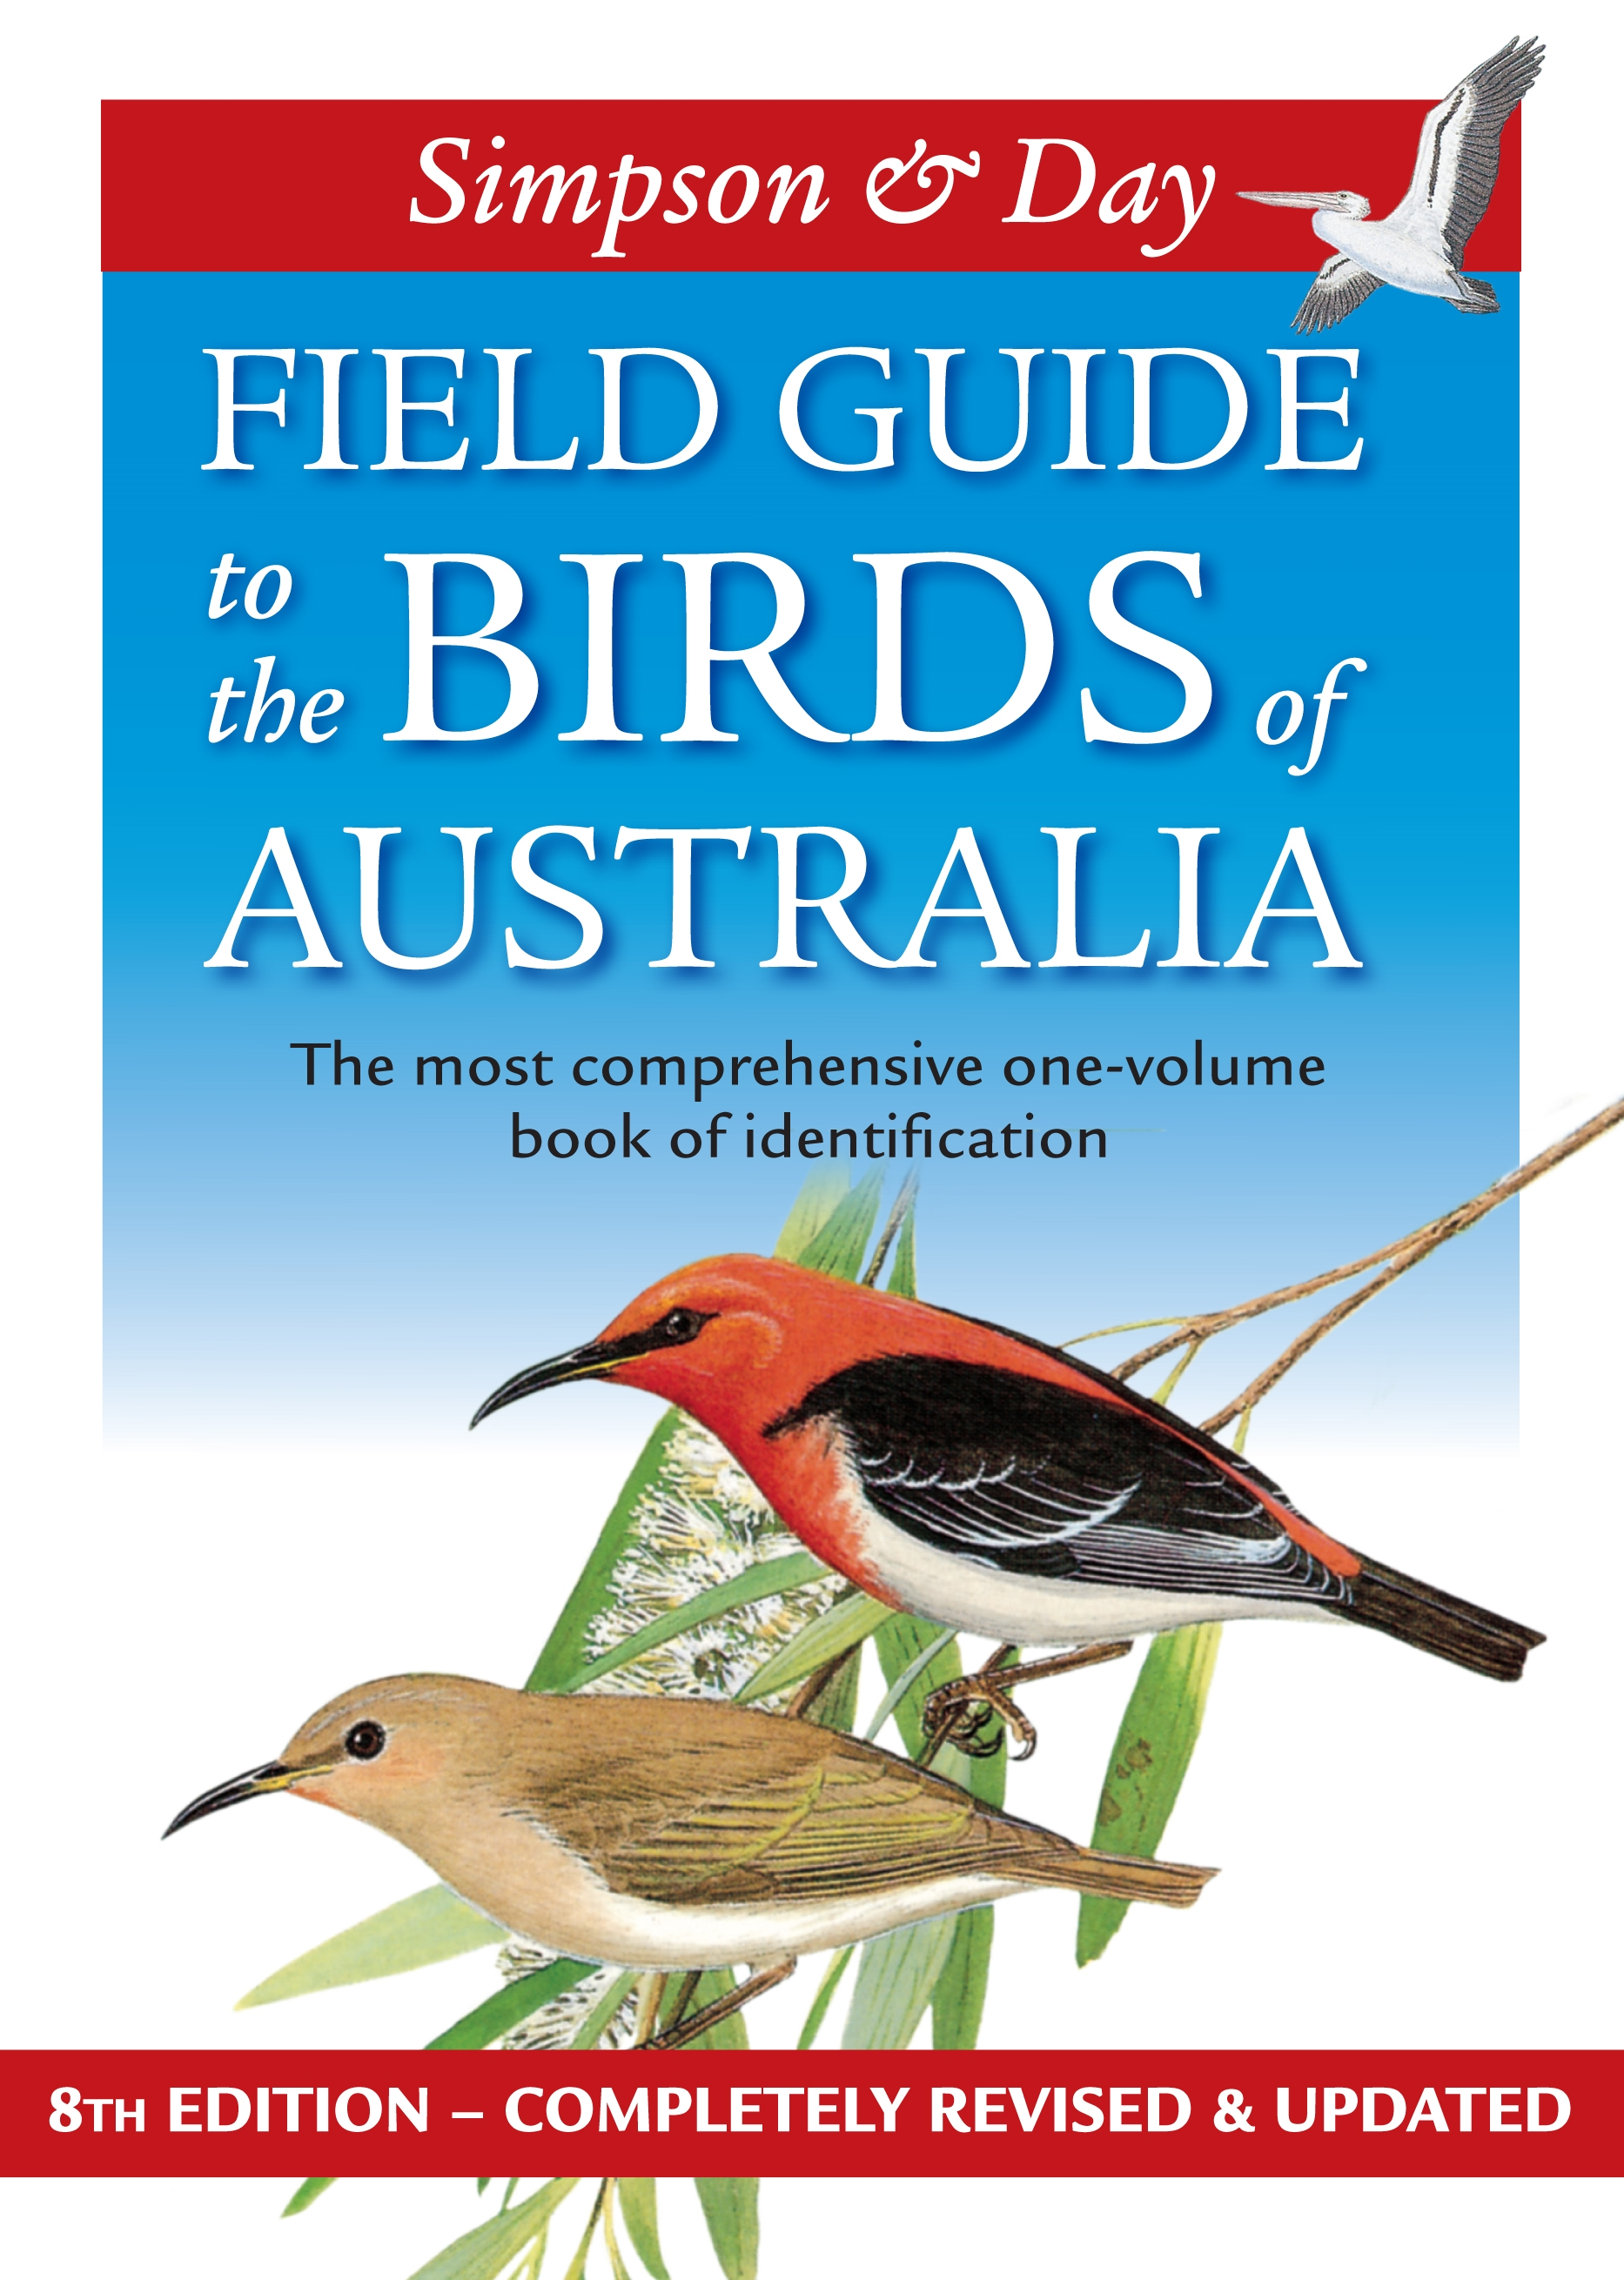 Field Guide to the birds of Australia 8th edition